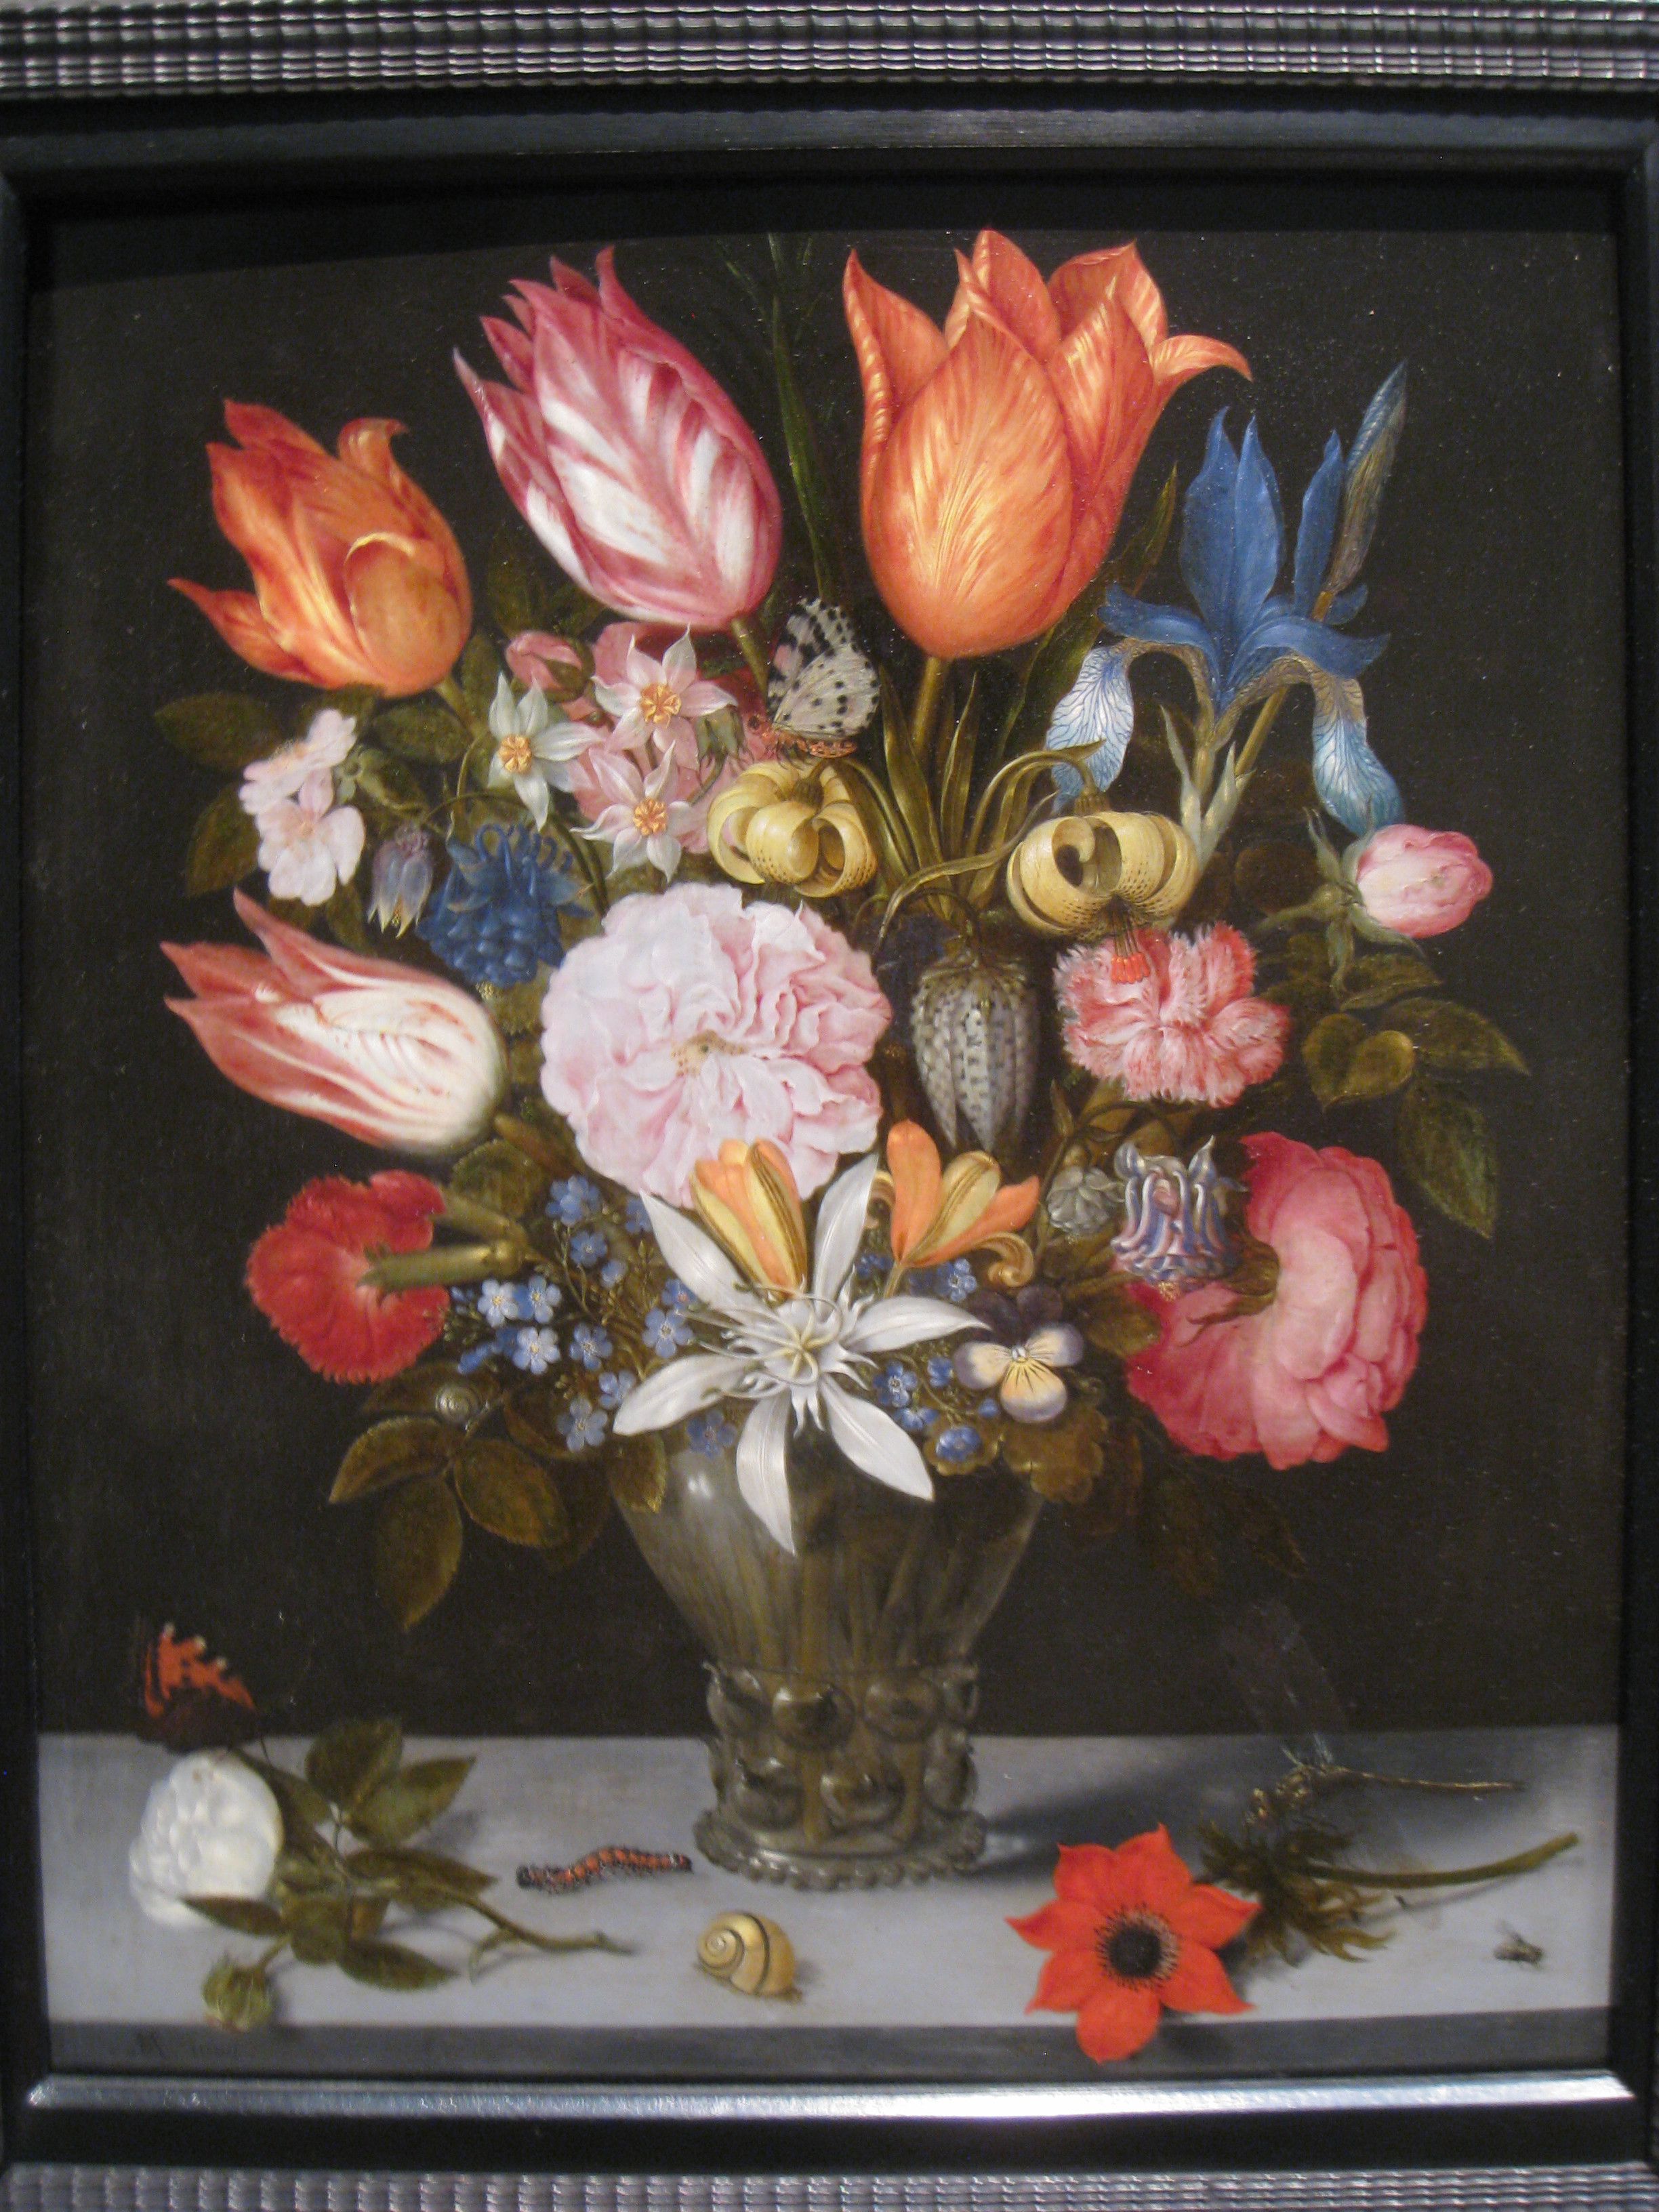 29 Perfect Jan Davidsz De Heem Vase Of Flowers 2021 free download jan davidsz de heem vase of flowers of still life paintings from the netherlands 1550 1720 wikimedia commons throughout 4